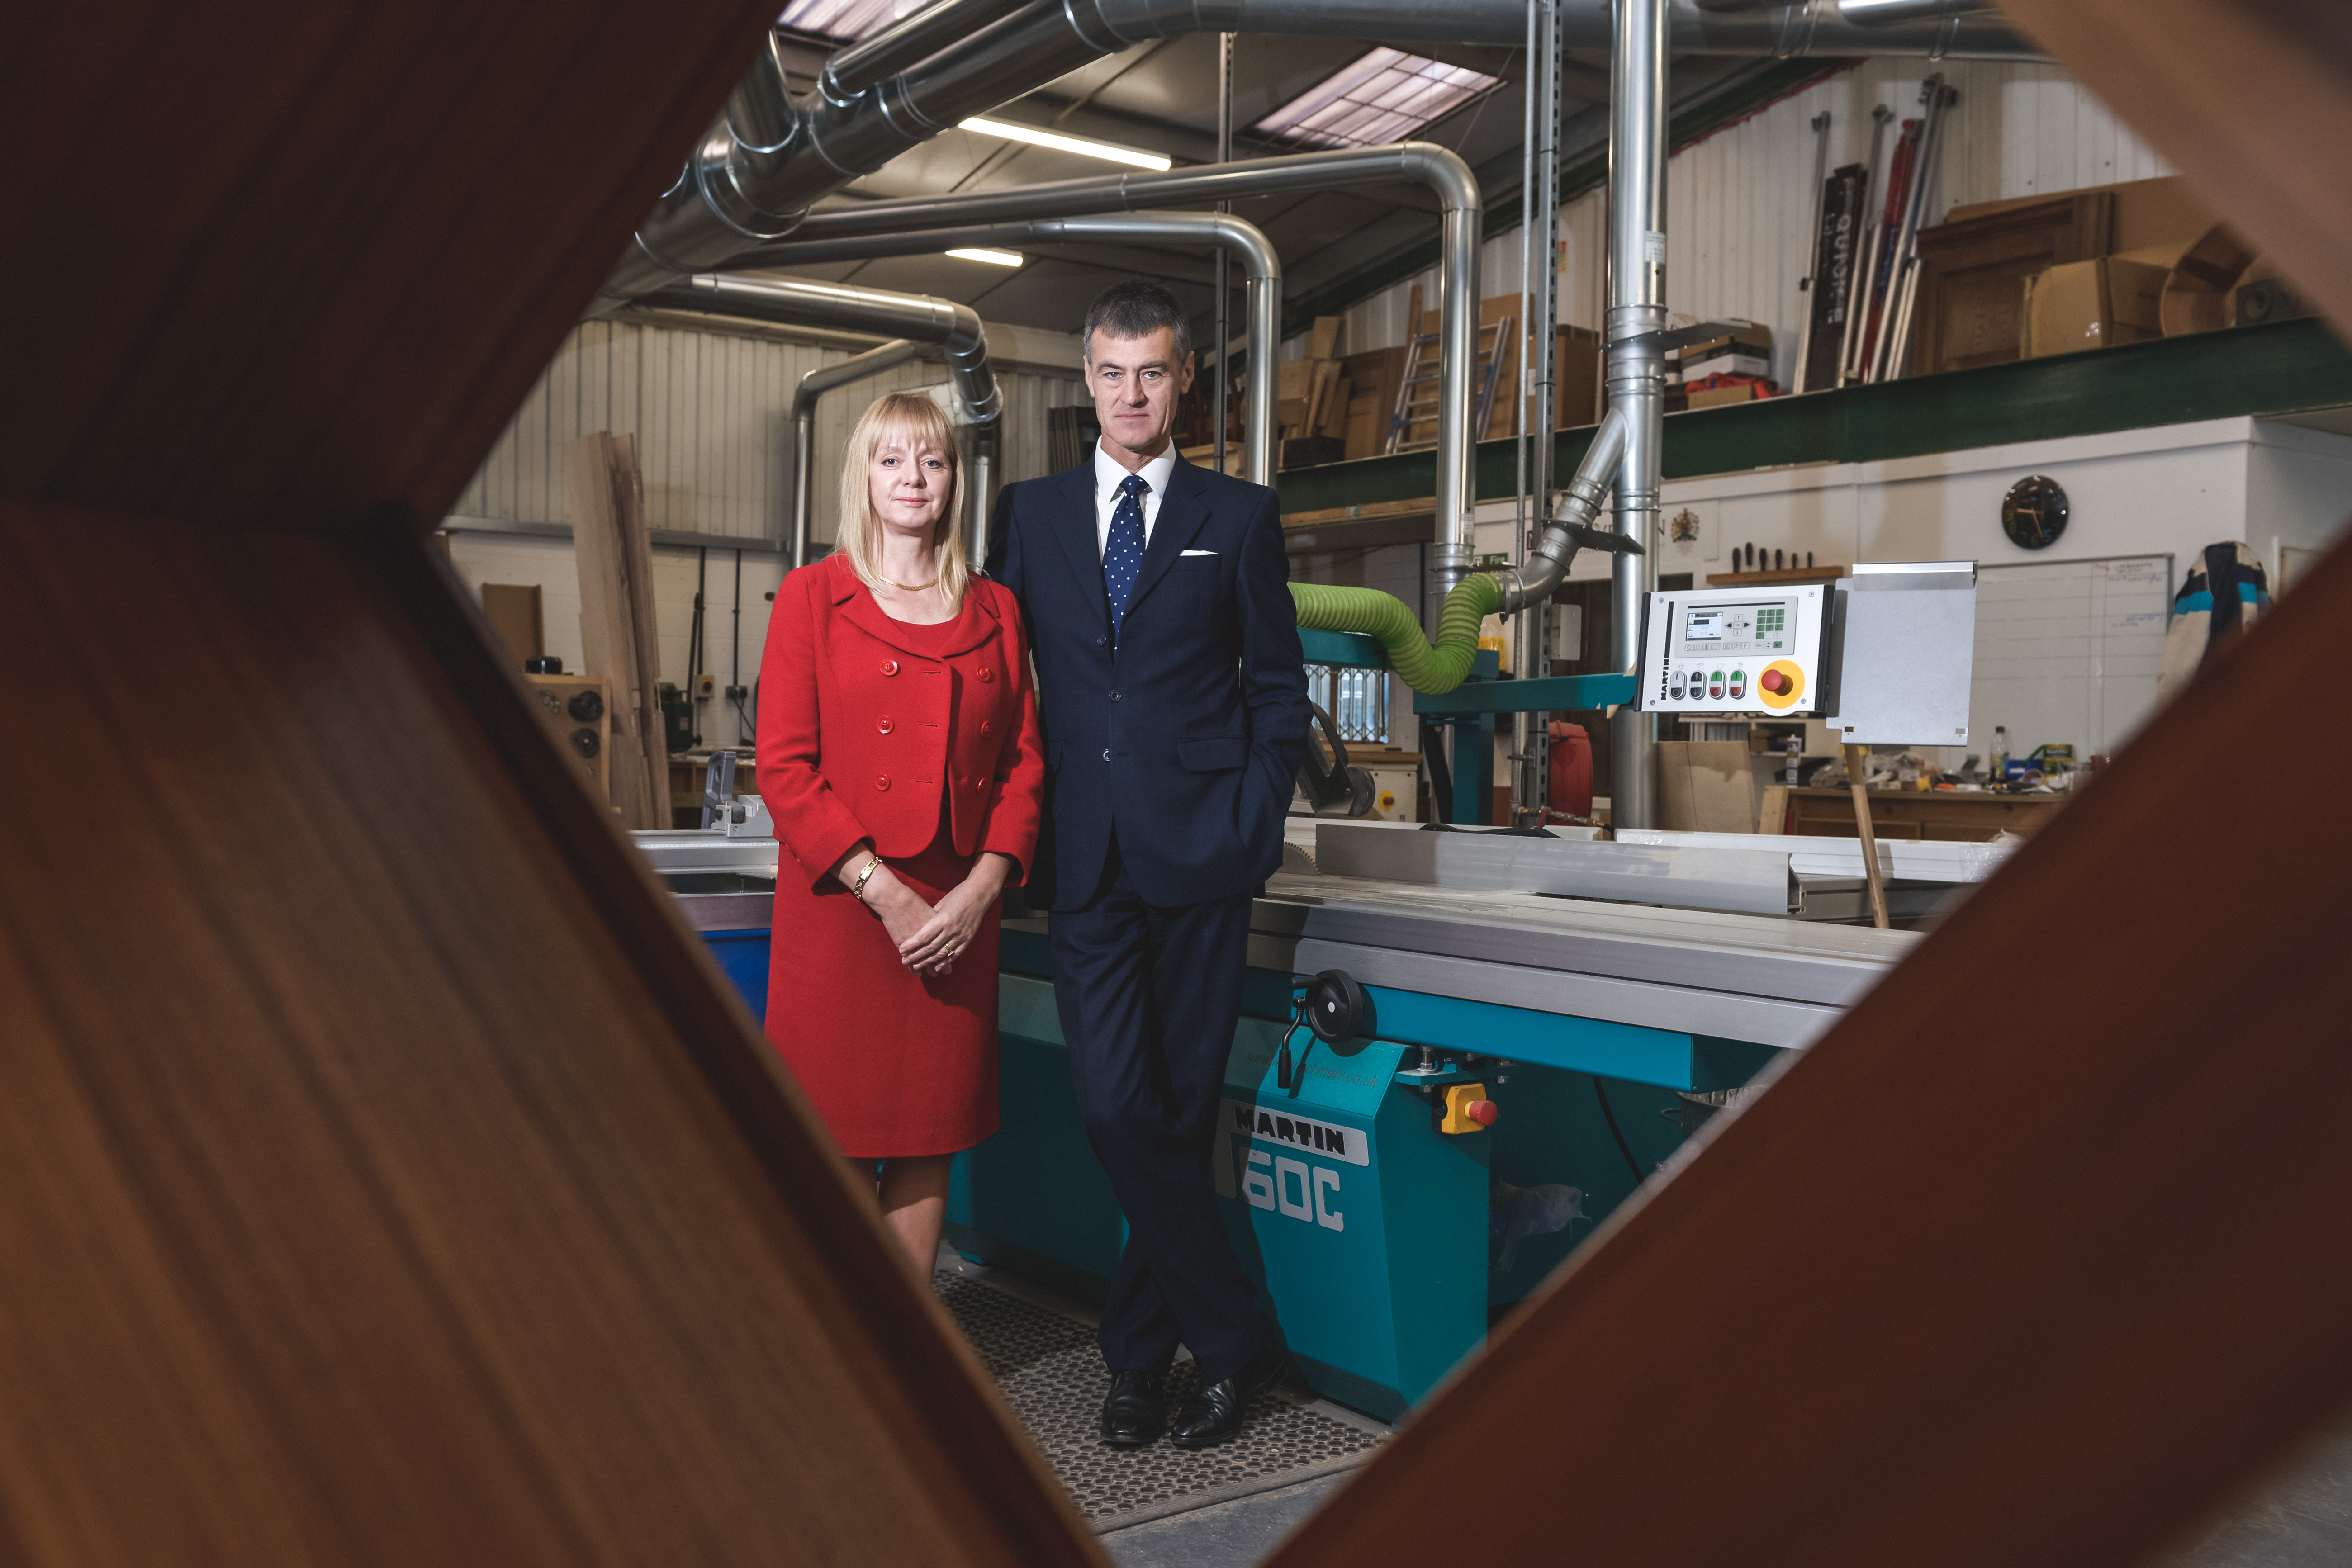 Skilled manufacturer makes major investments on the back of support